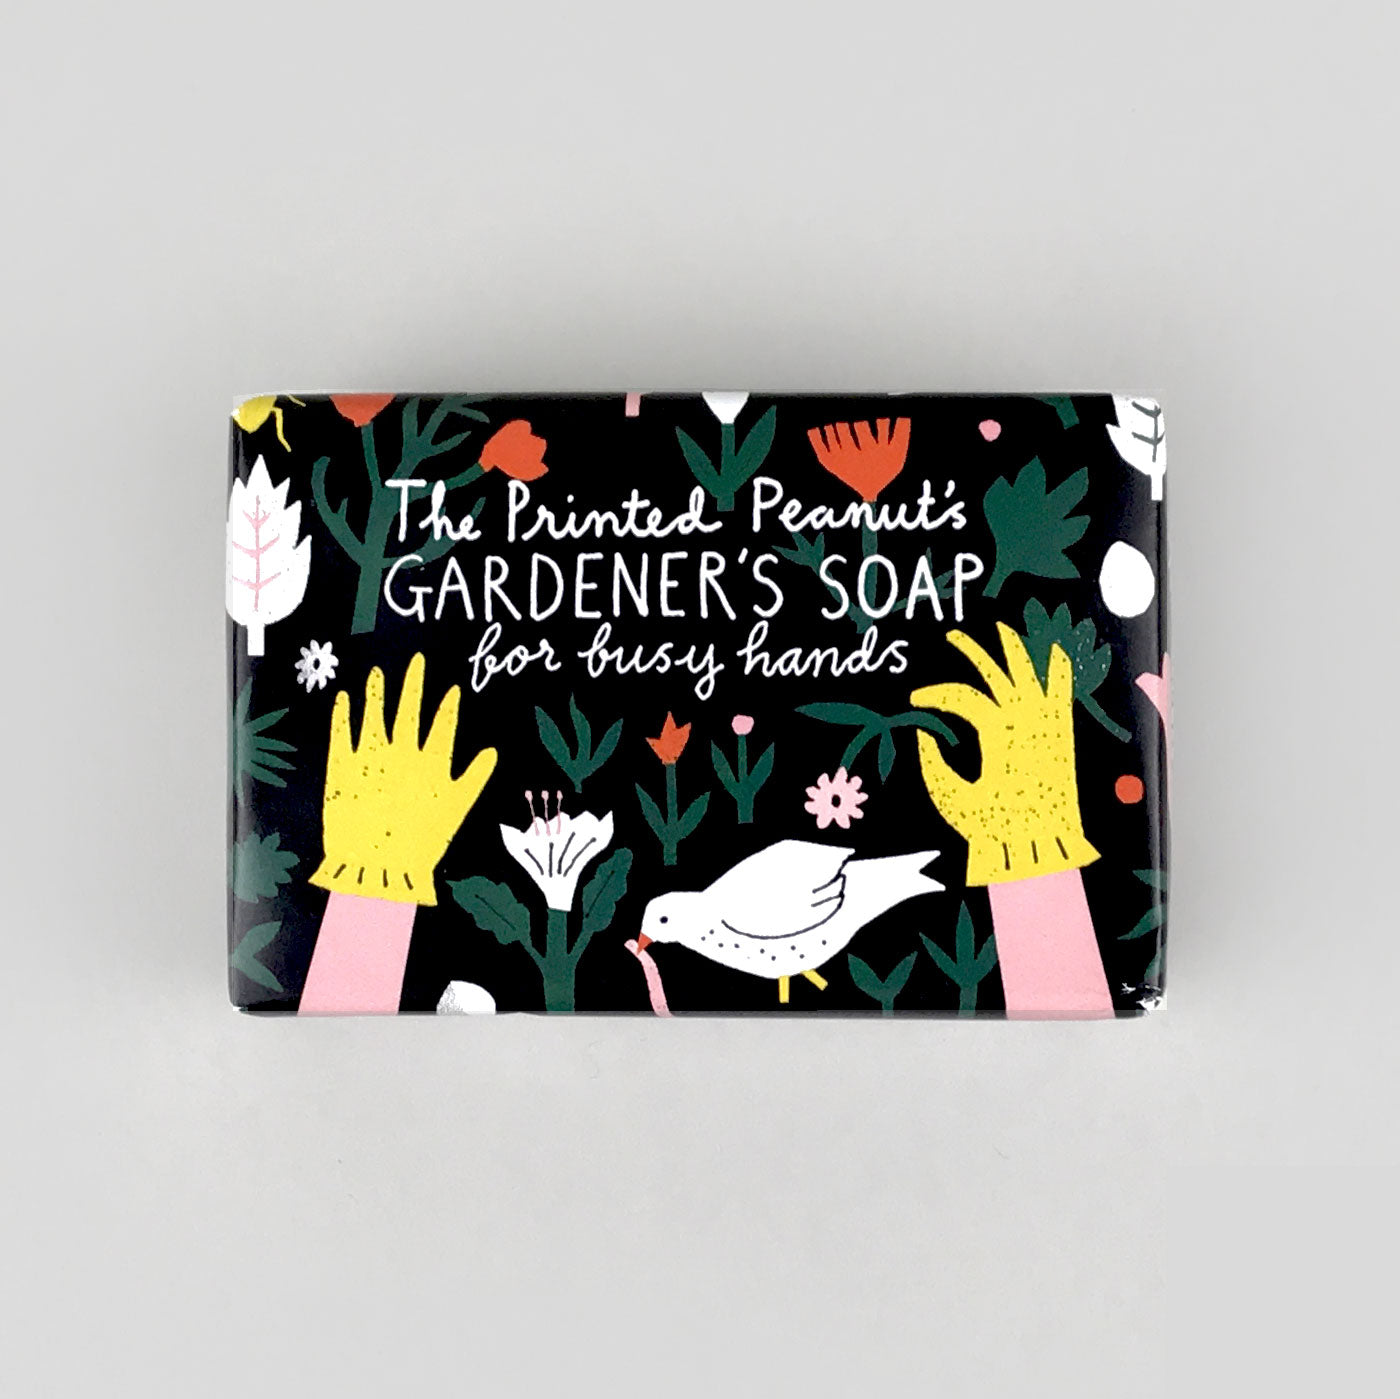 The Printed Peanut Gardener's Soap